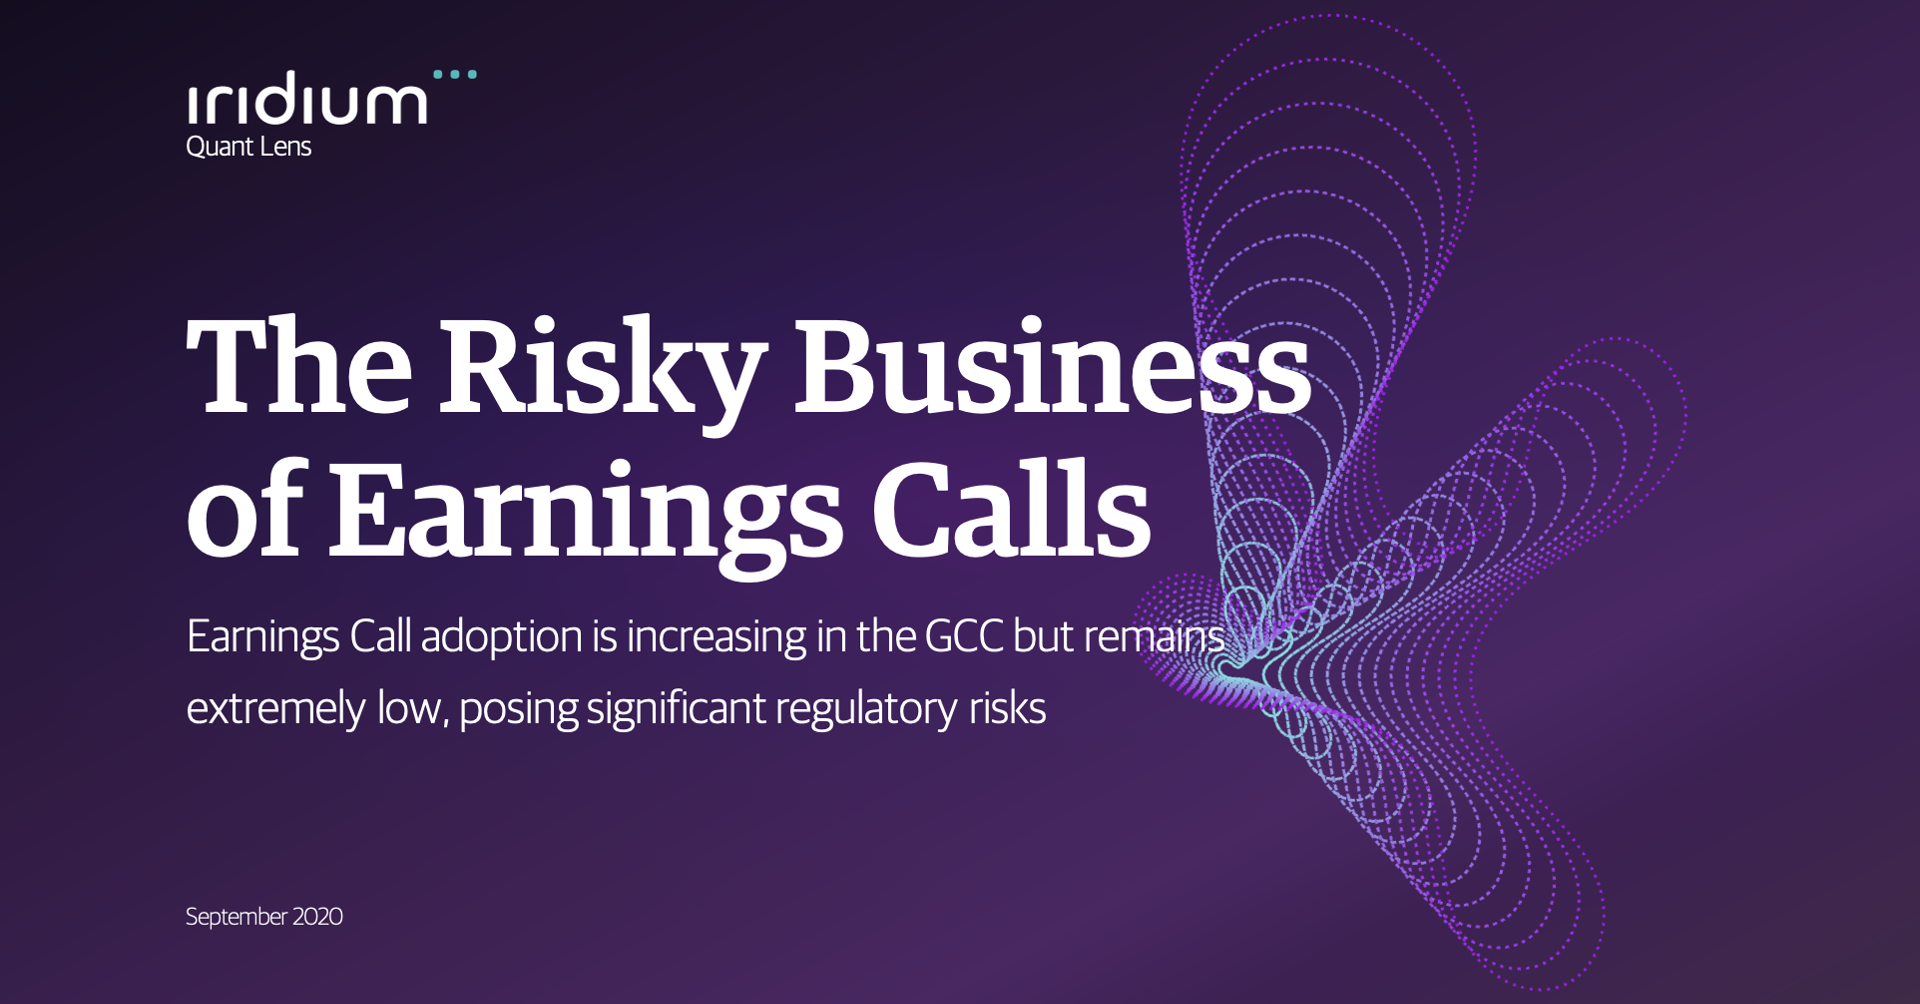 The Risky Business of Earnings Calls